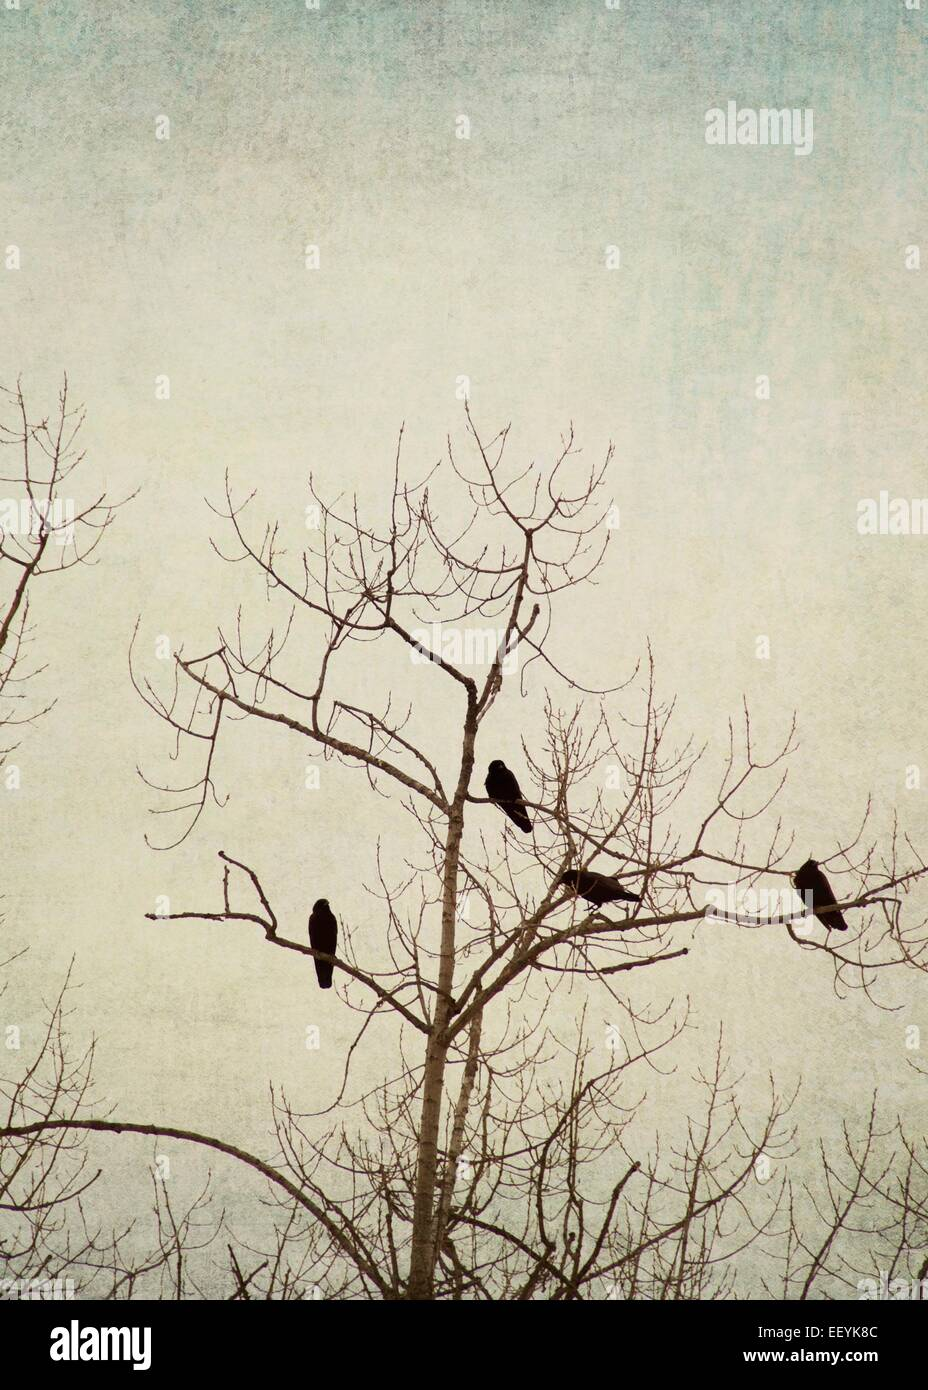 Birds perched in a tree during winter. - Stock Image